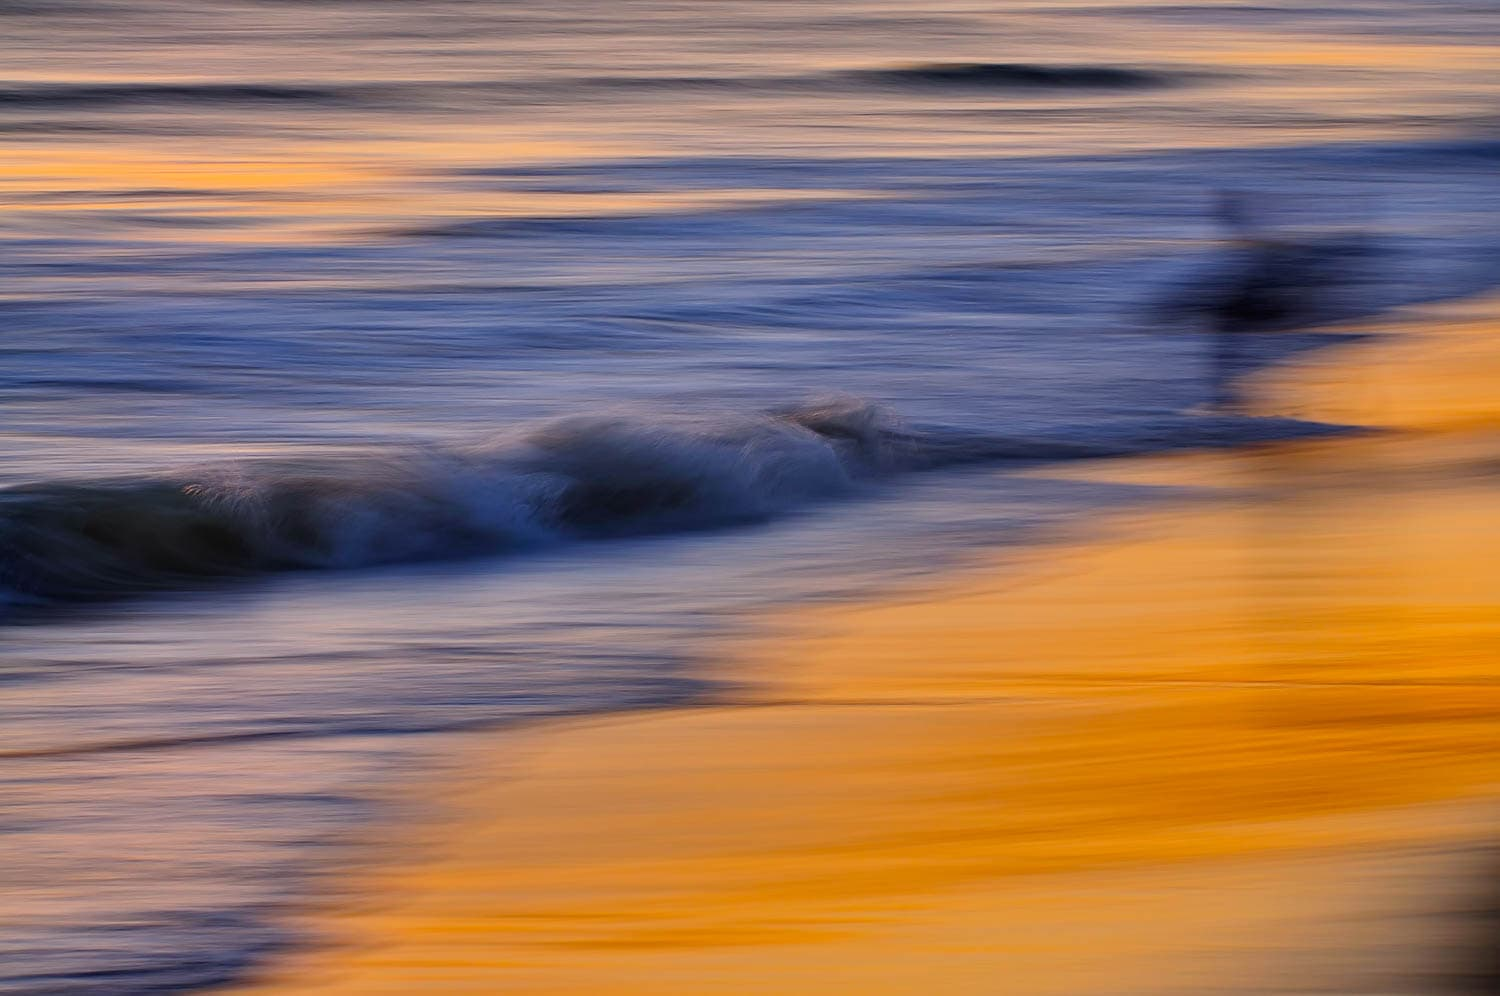 Intentional panning motion with a slow shutter speed creates an abstract scene